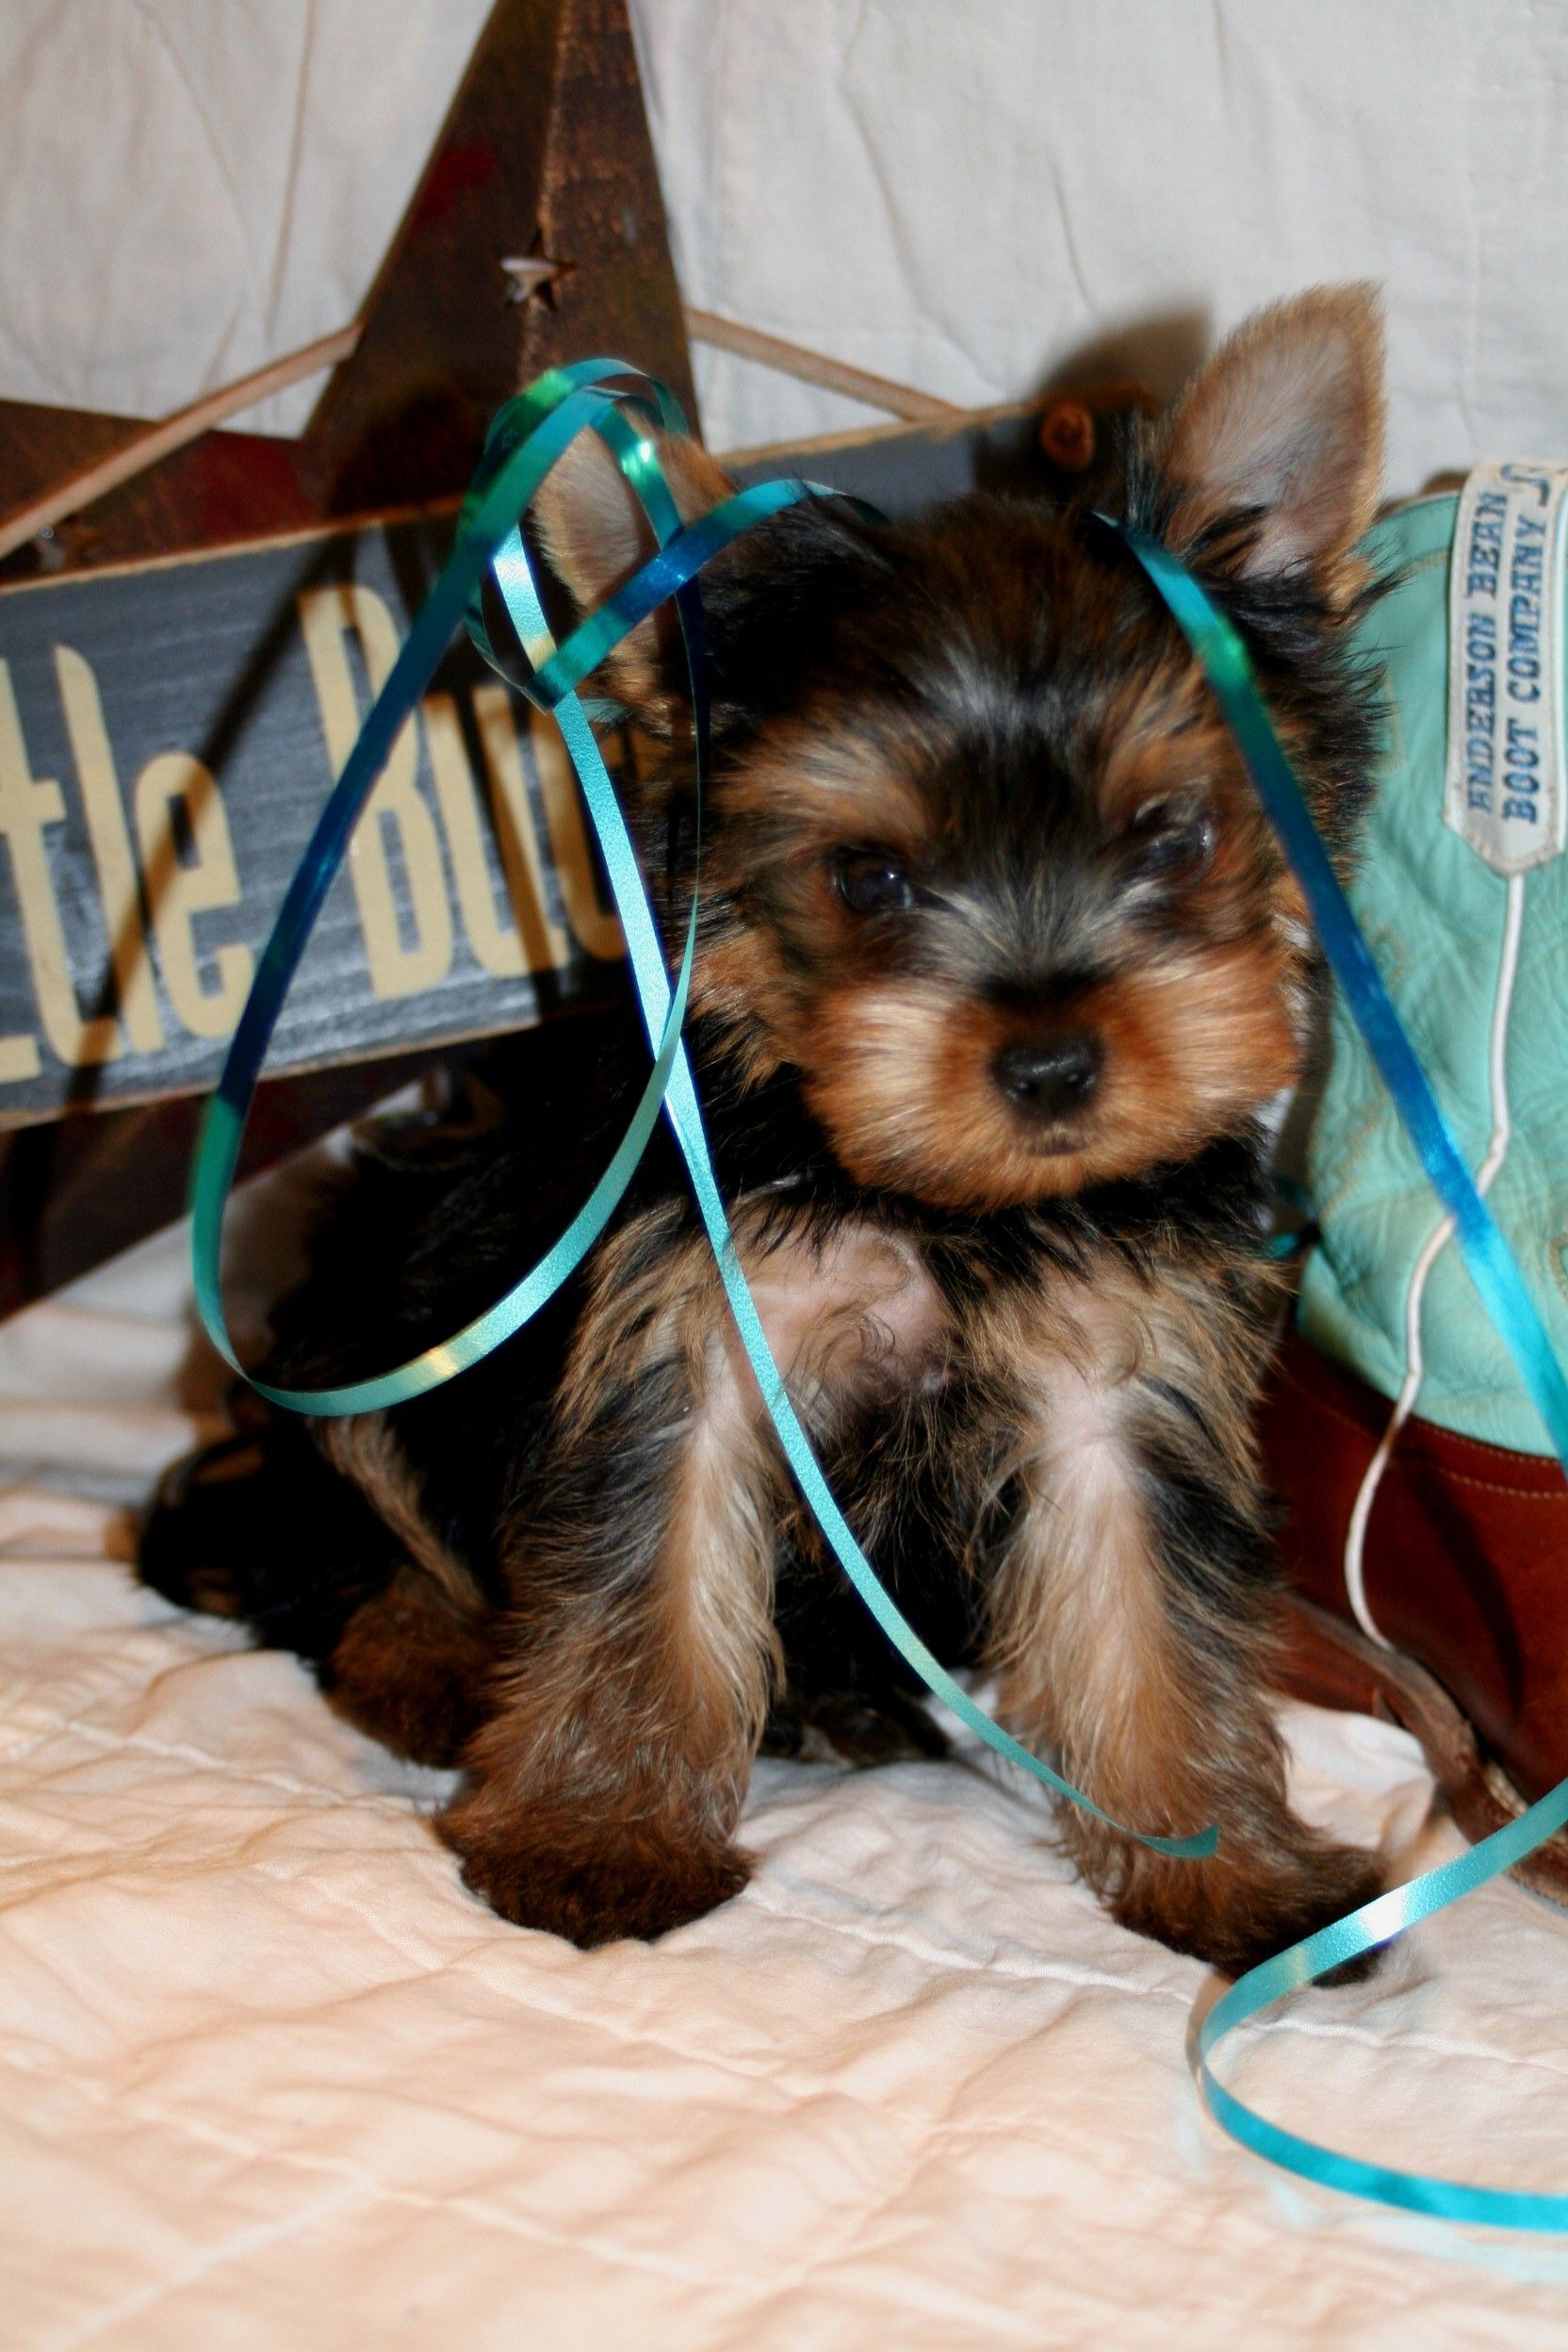 Wild West Yorkies Txyorkie Com Yorkie Puppies For Sale In Texas Past Puppies Black And Gold Yorkies Pa Puppies For Sale Yorkie Puppy Yorkie Puppy For Sale